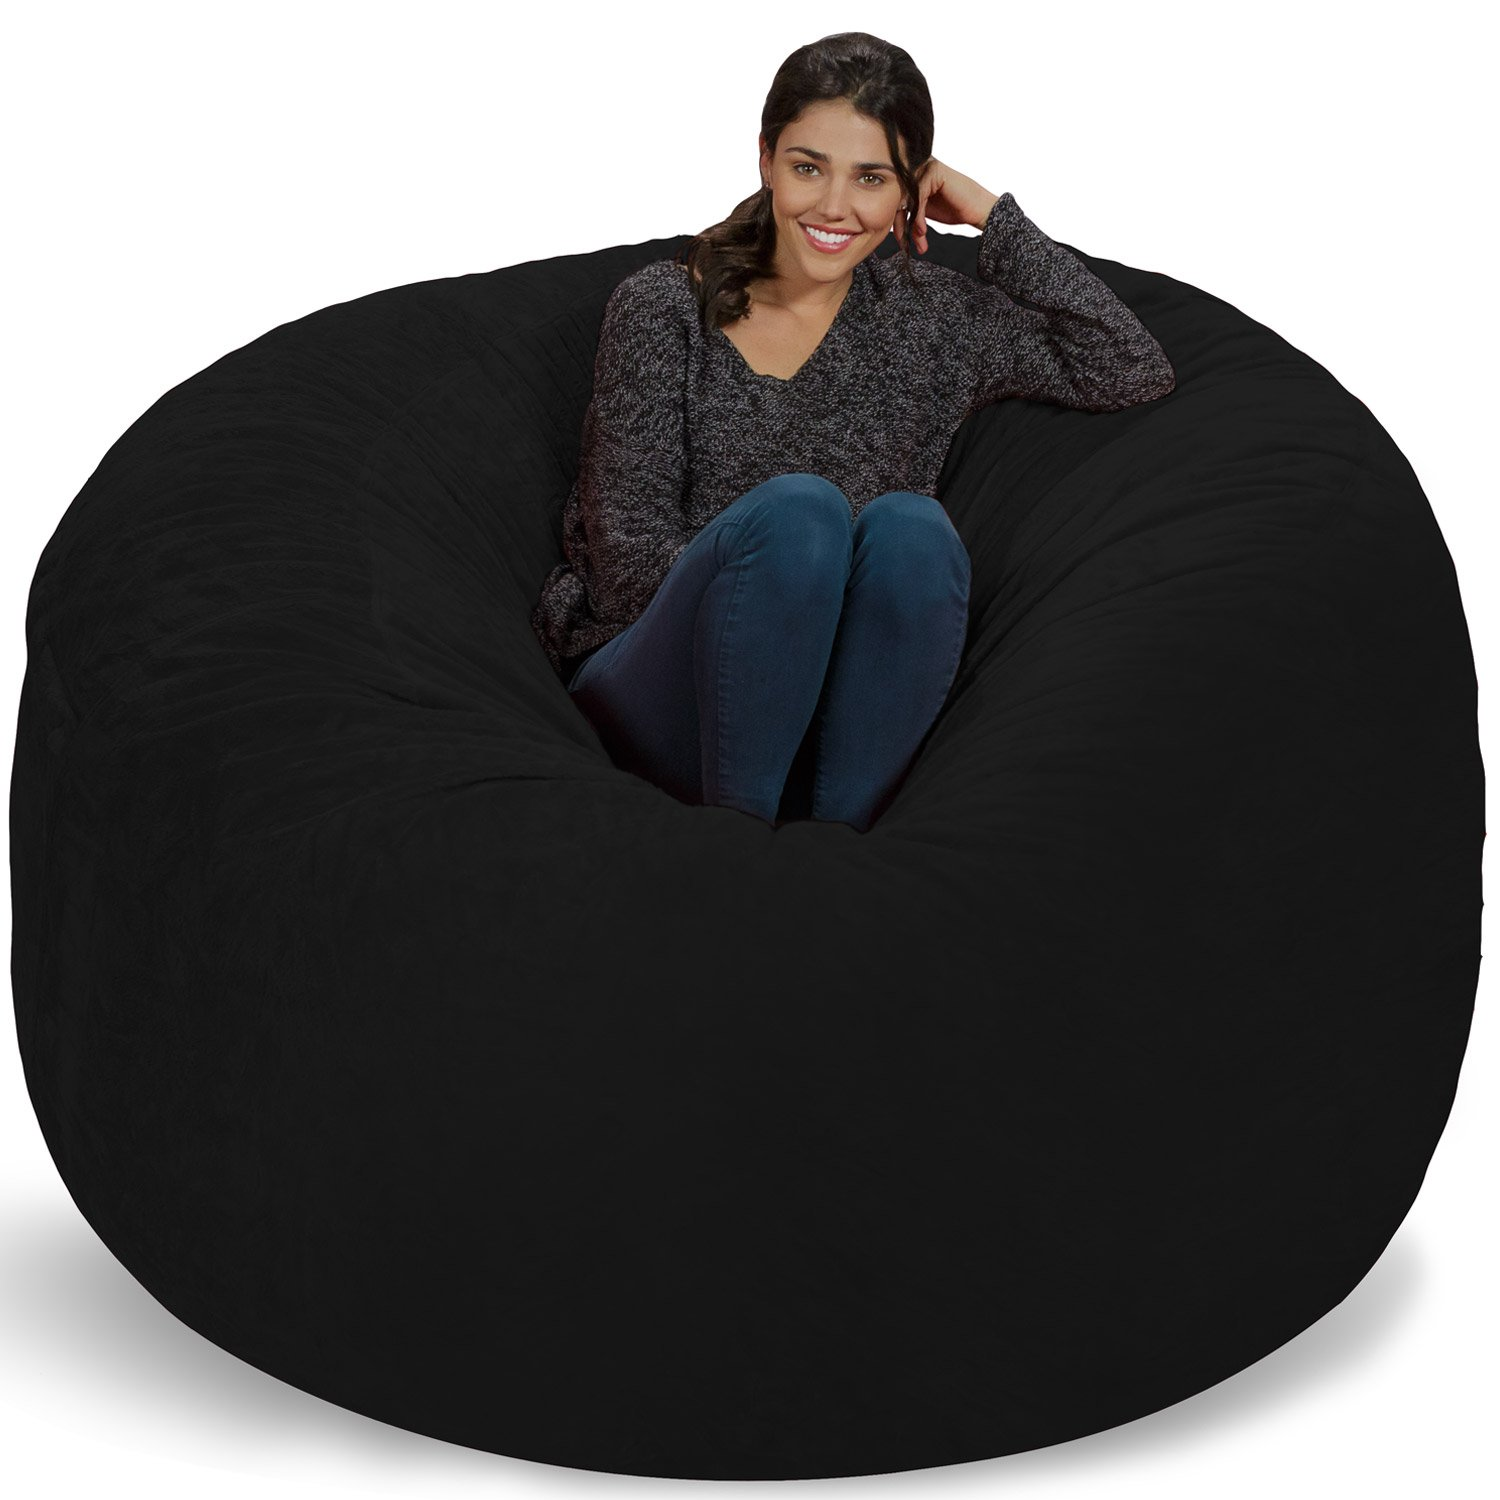 Chill Sack Bean Bag Chair: Giant 6' Memory Foam Furniture Bean Bag - Big Sofa with Soft Micro Fiber Cover, Black Furry by Chill Sack